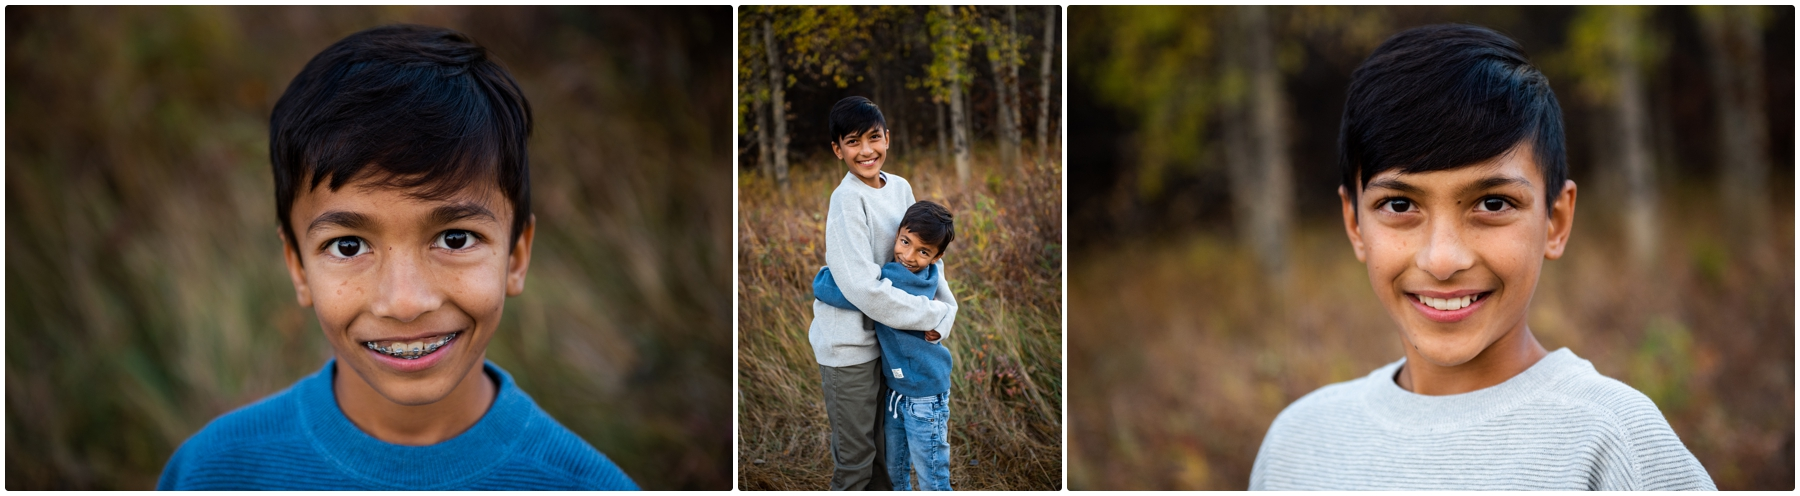 Fall Family Photography- Calgary Edworthy Park